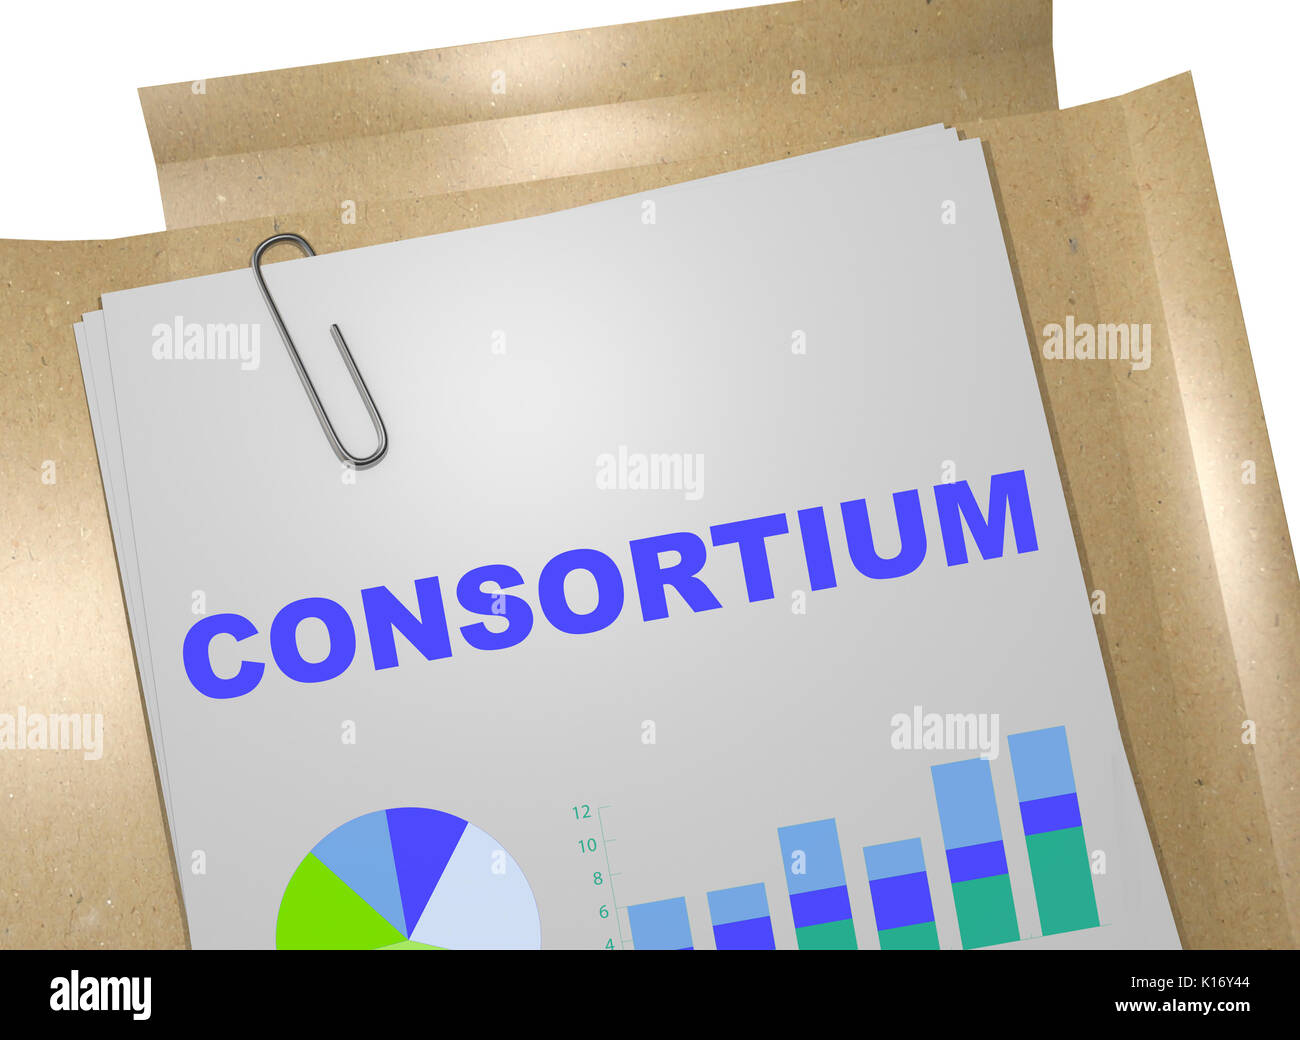 3D illustration of 'CONSORTIUM' title on business document - Stock Image